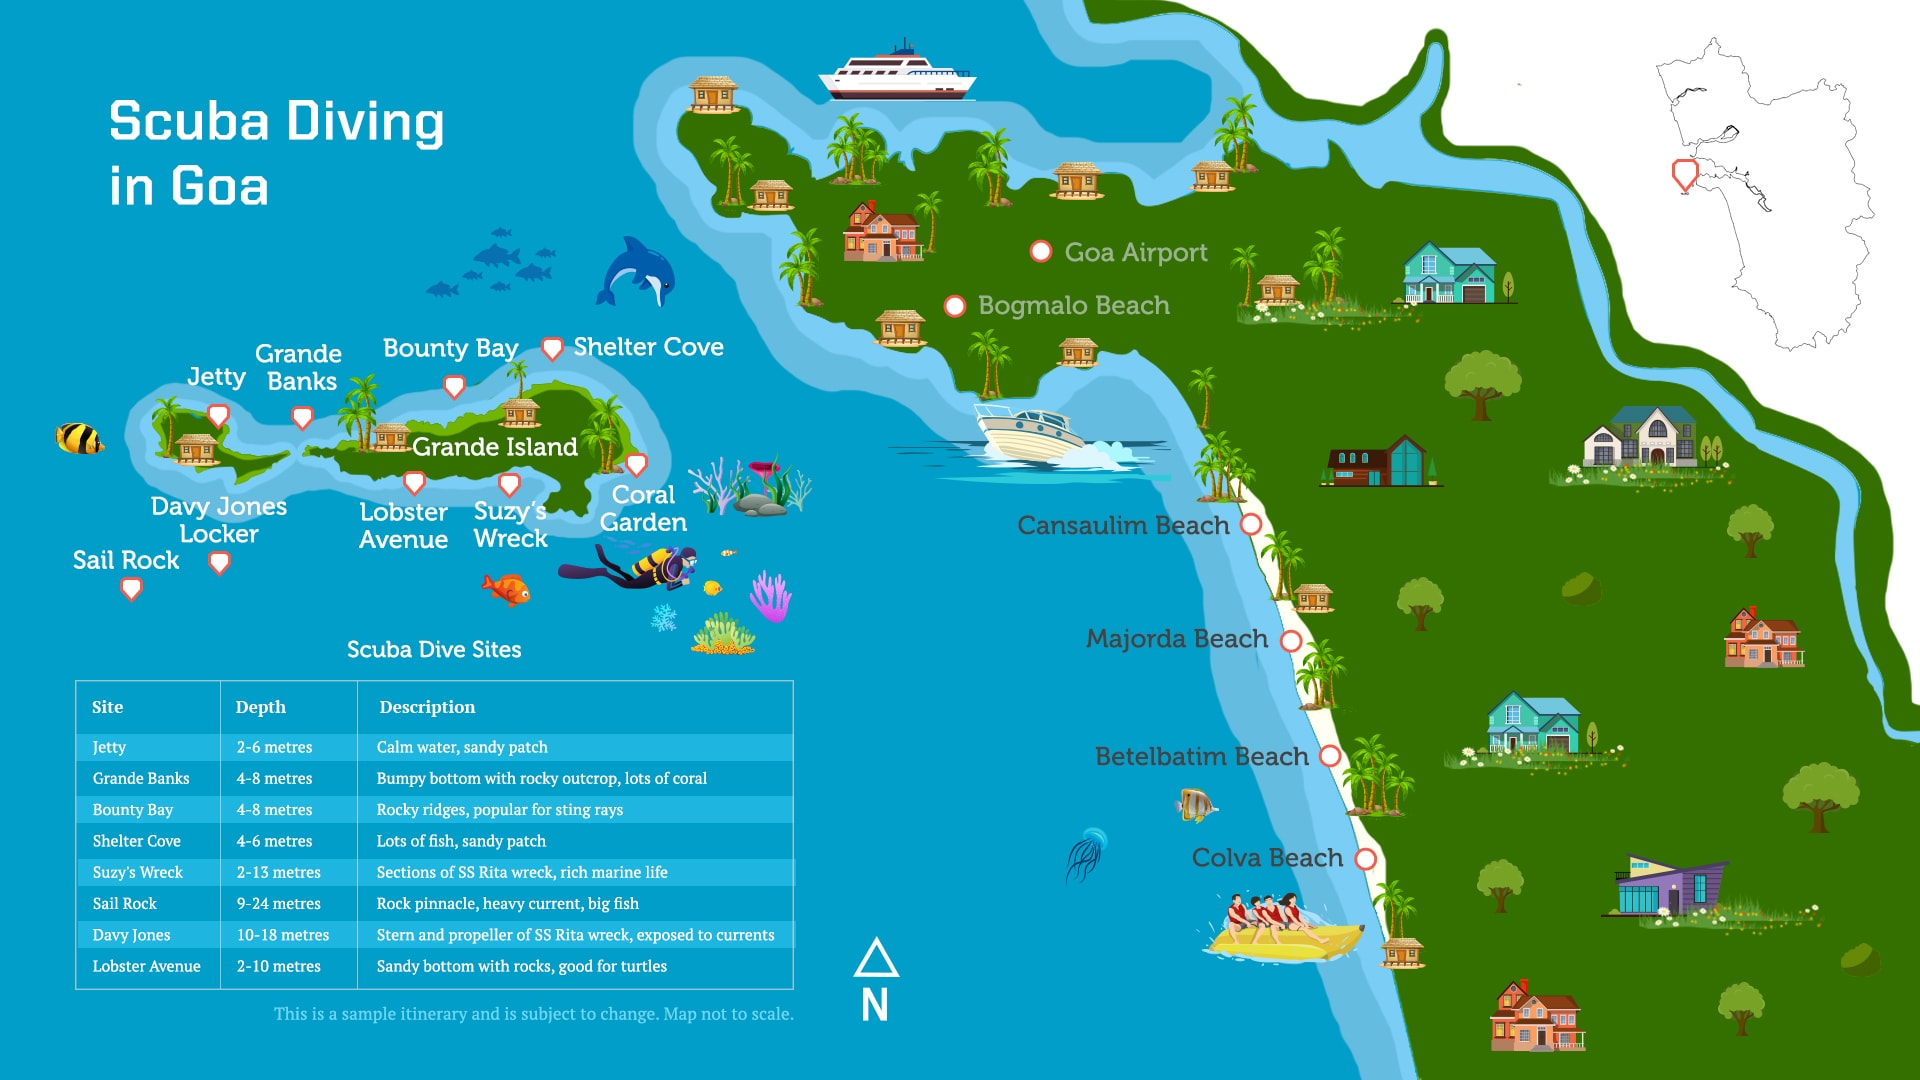 Map of scuba diving spots at Grande Island in Goa